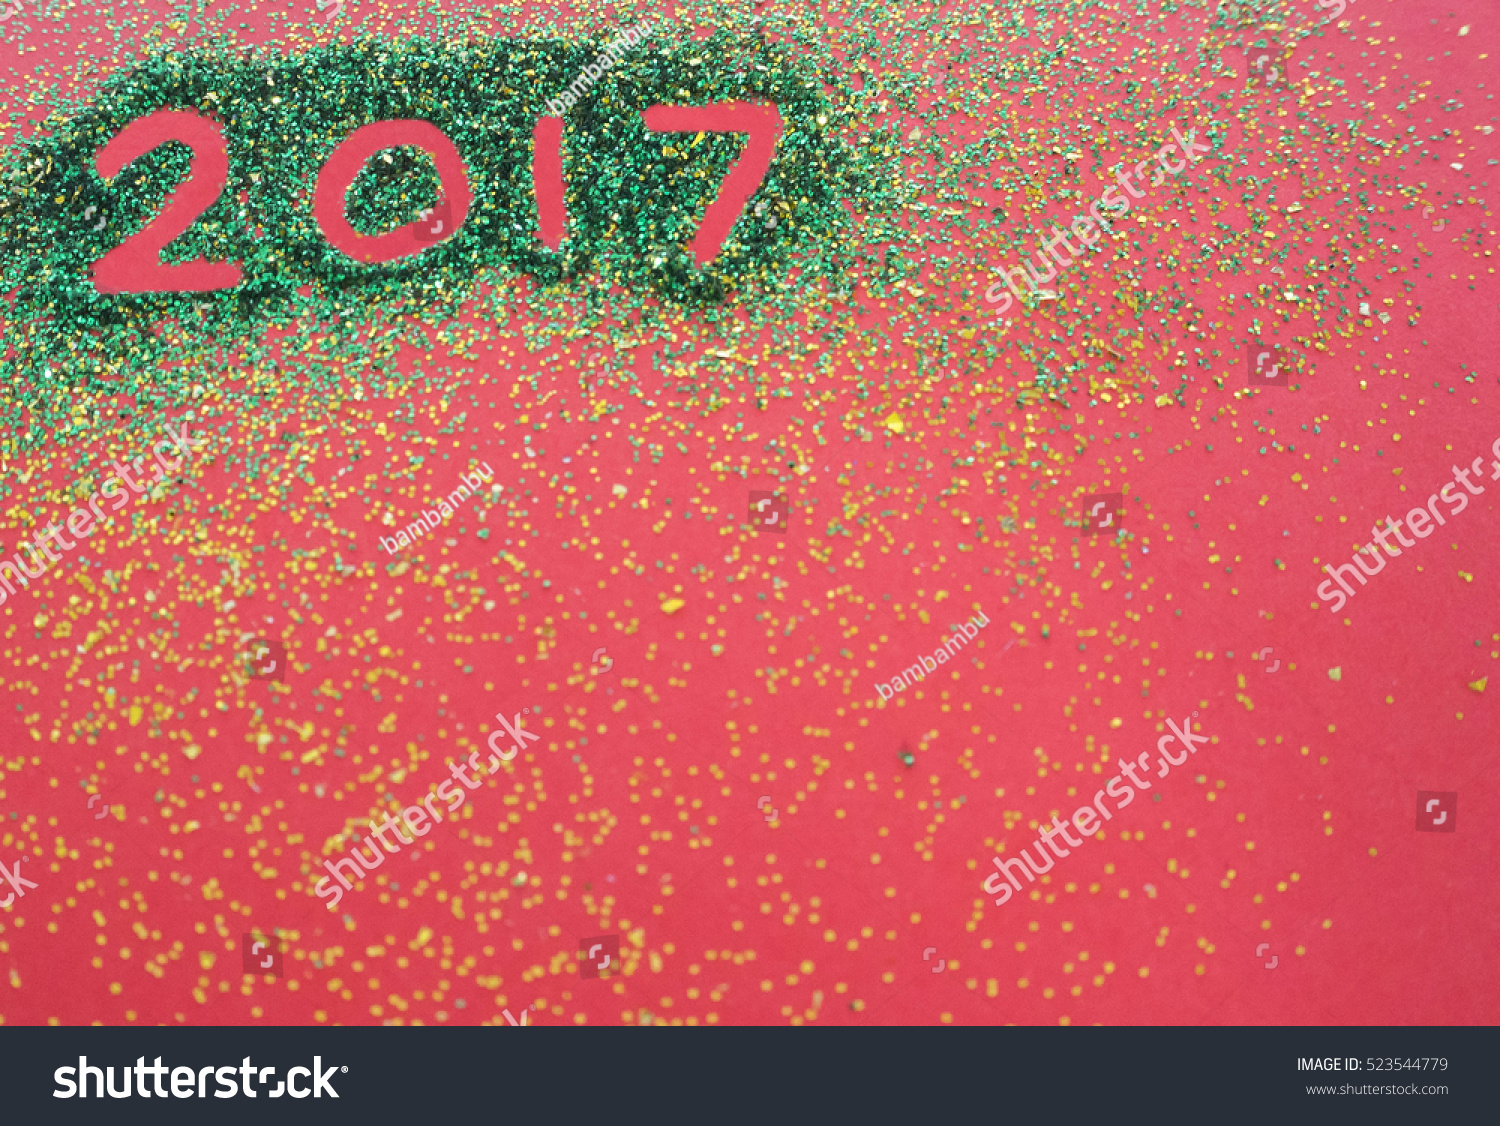 create merry christmas and happy new year card on red background copy space